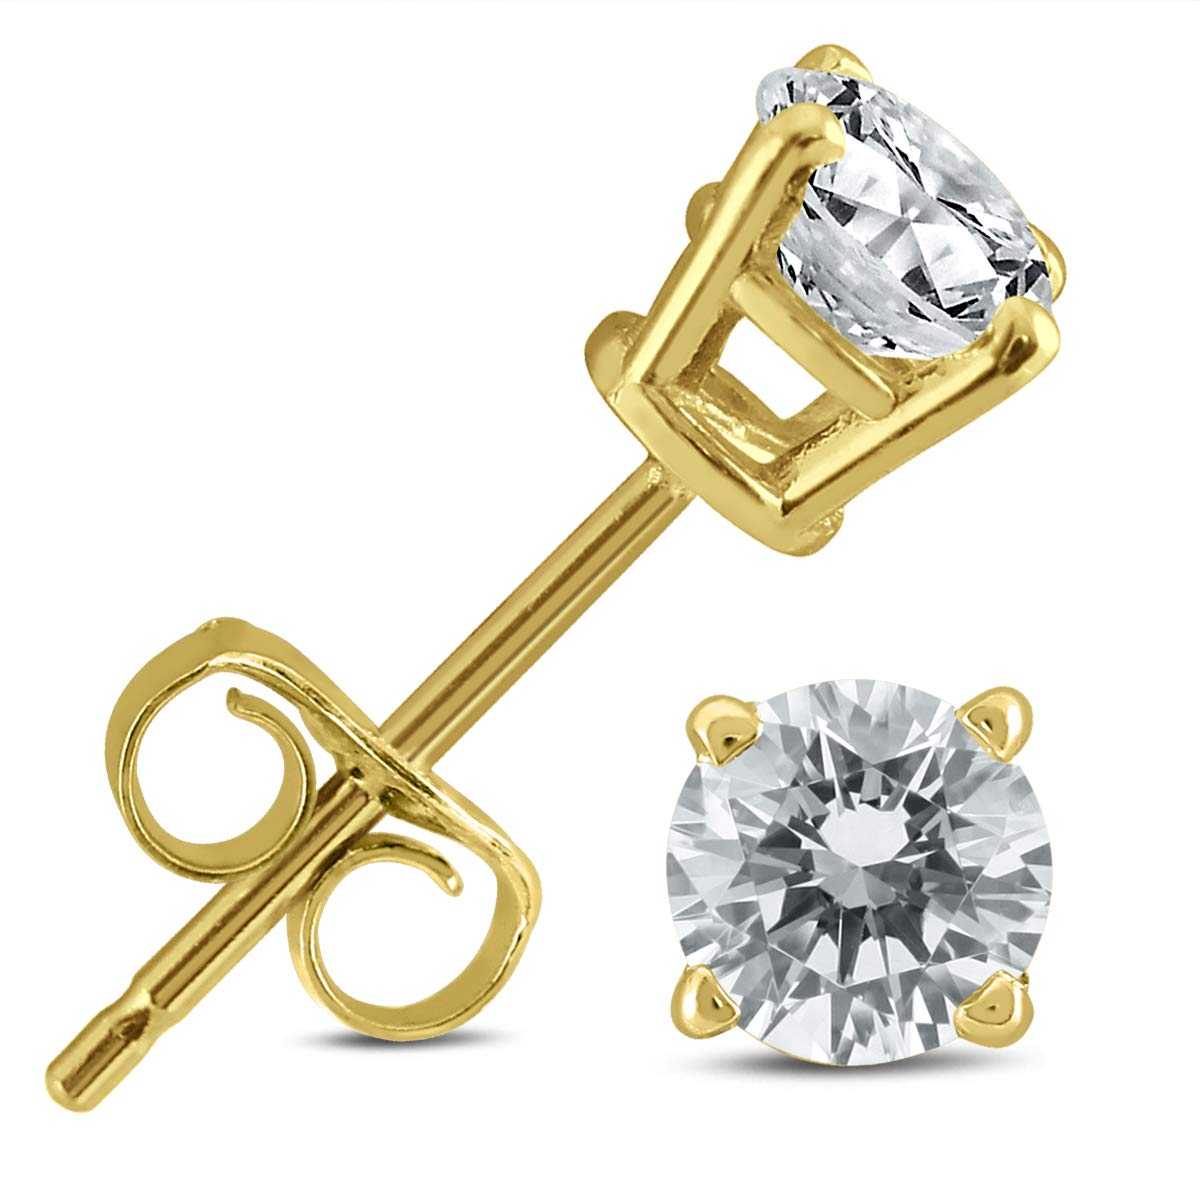 1/2 Carat TW AGS Certified Round Diamond Solitaire Stud Earrings in 14K Yellow Gold by Szul